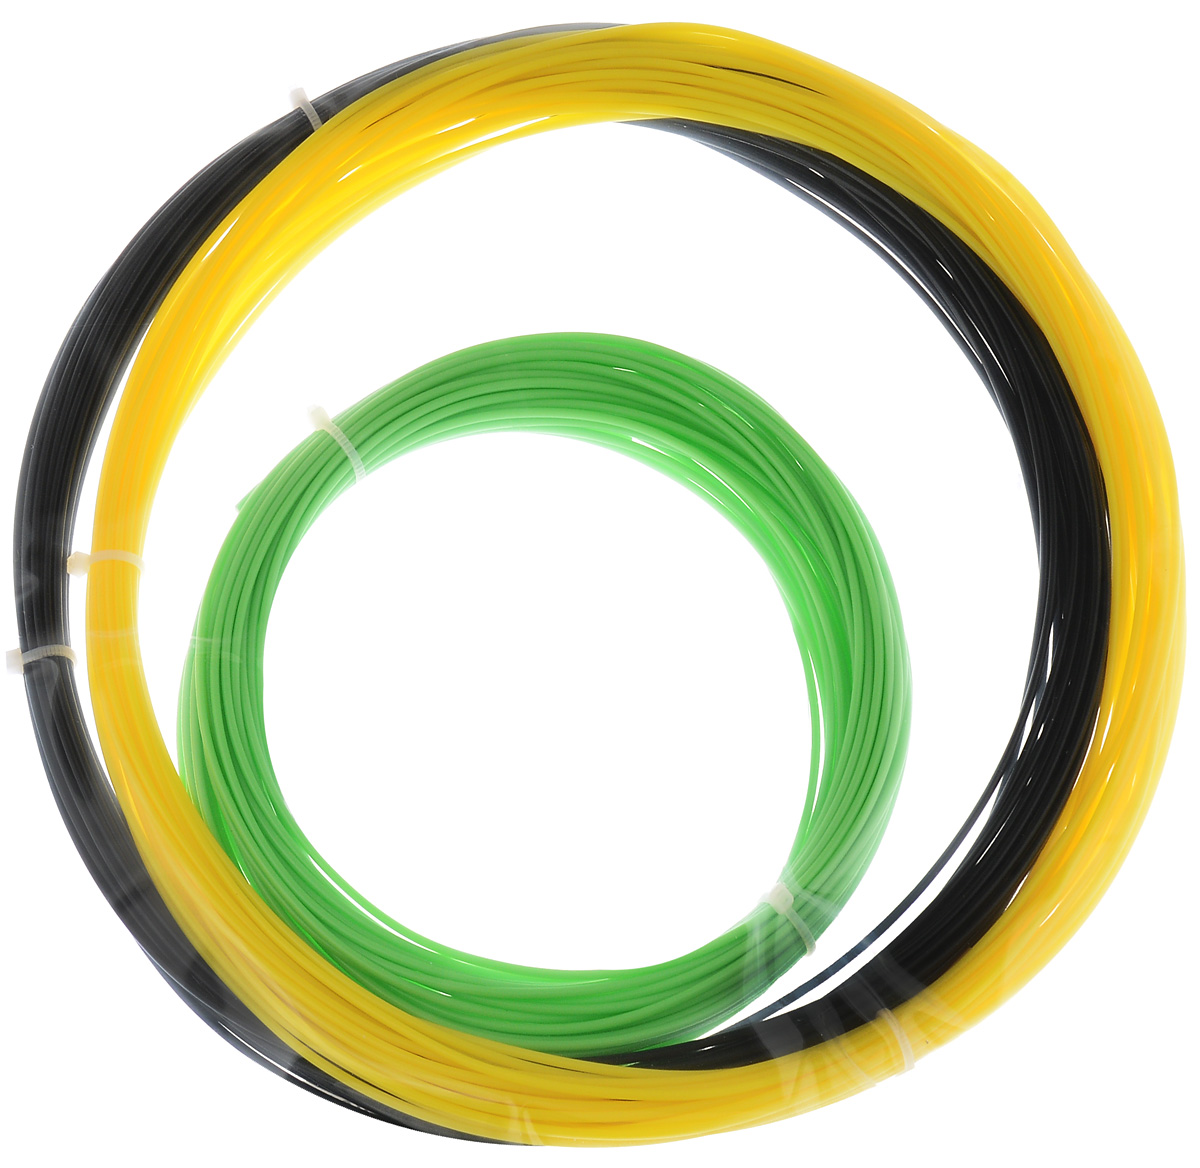 ESUN 3D Filament, Black Yellow Light Green комплект ABS-пластика, 10 м